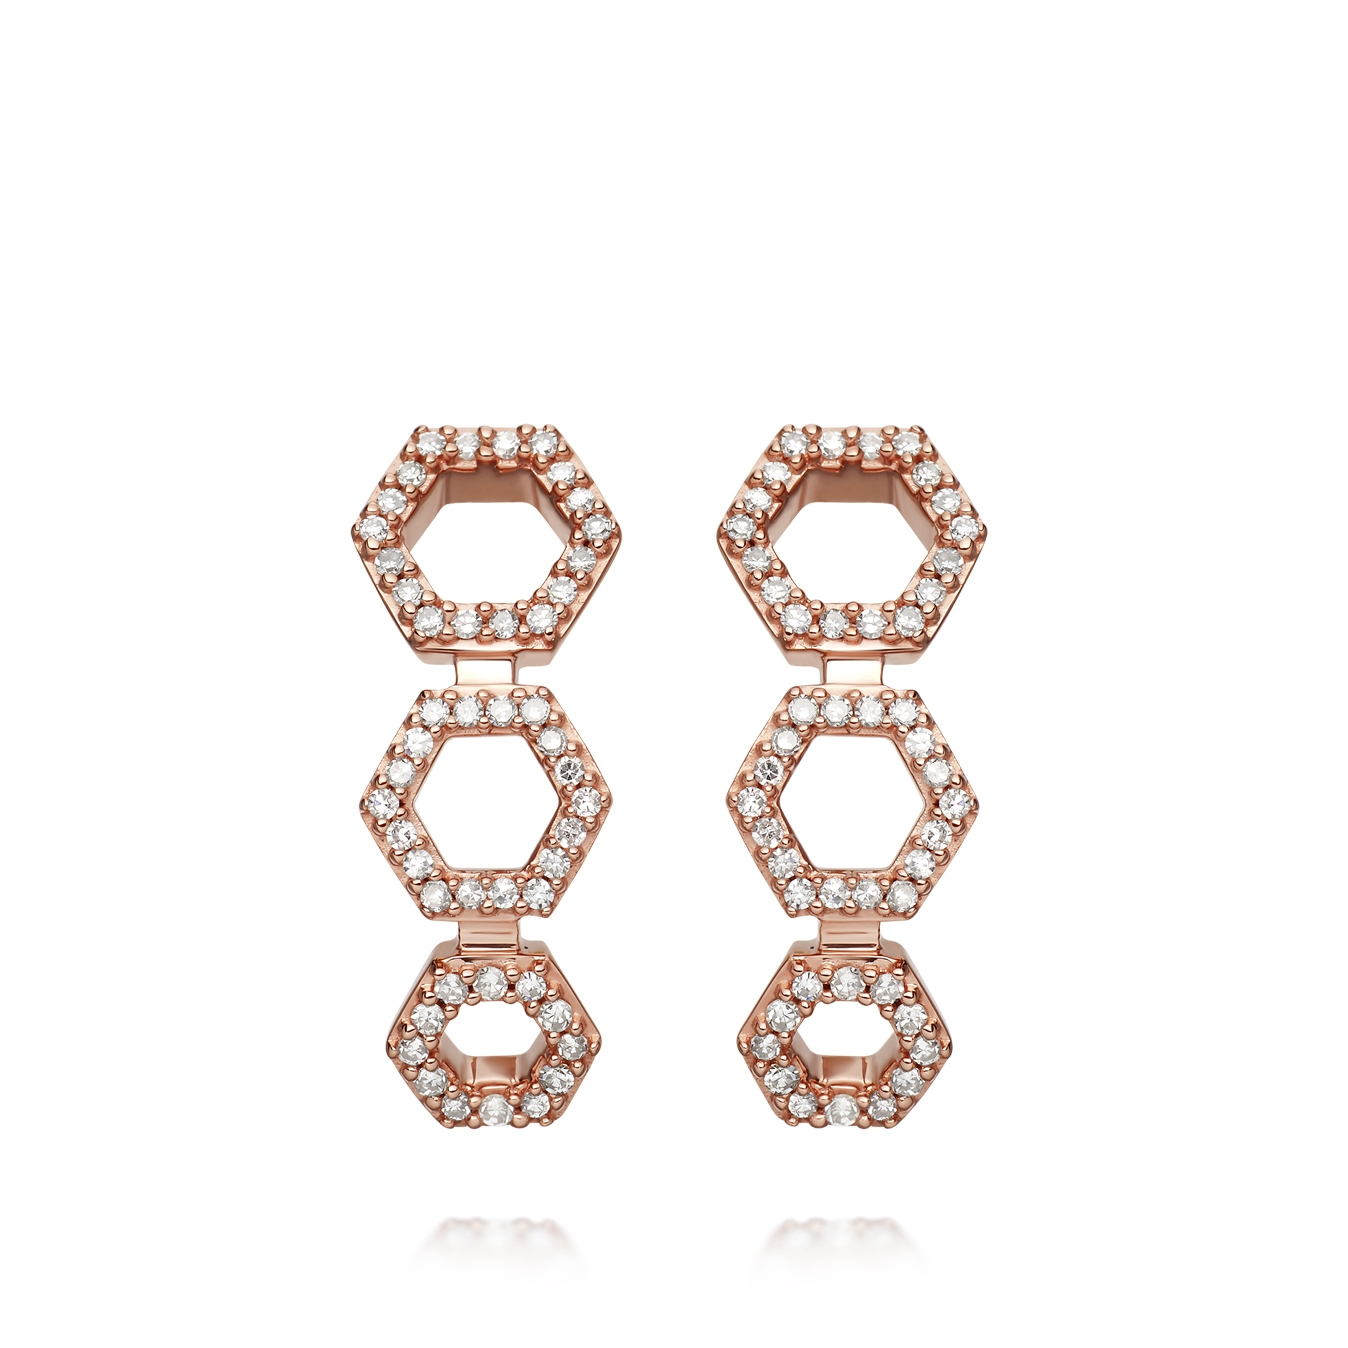 Triple Honeycomb Stud Earrings